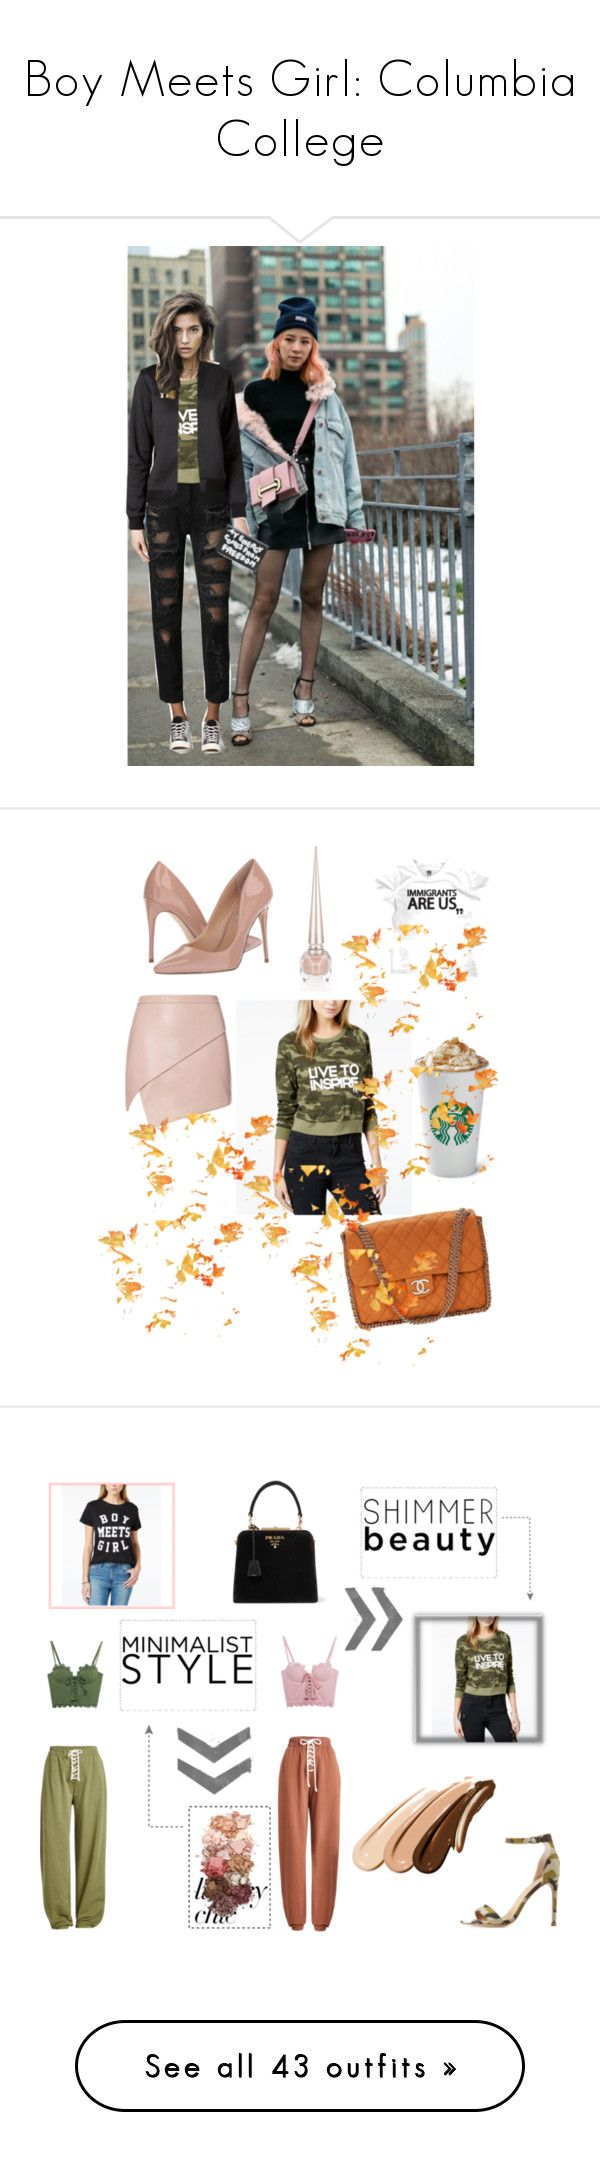 """""""Boy Meets Girl: Columbia College"""" by kszaman ❤ liked on Polyvore featuring Tommy Hilfiger, Boy Meets Girl, Comme des Garçons, Michelle Mason, Christian Louboutin, Chanel, Steve Madden, Mark & Maddux, Prada and Puma"""